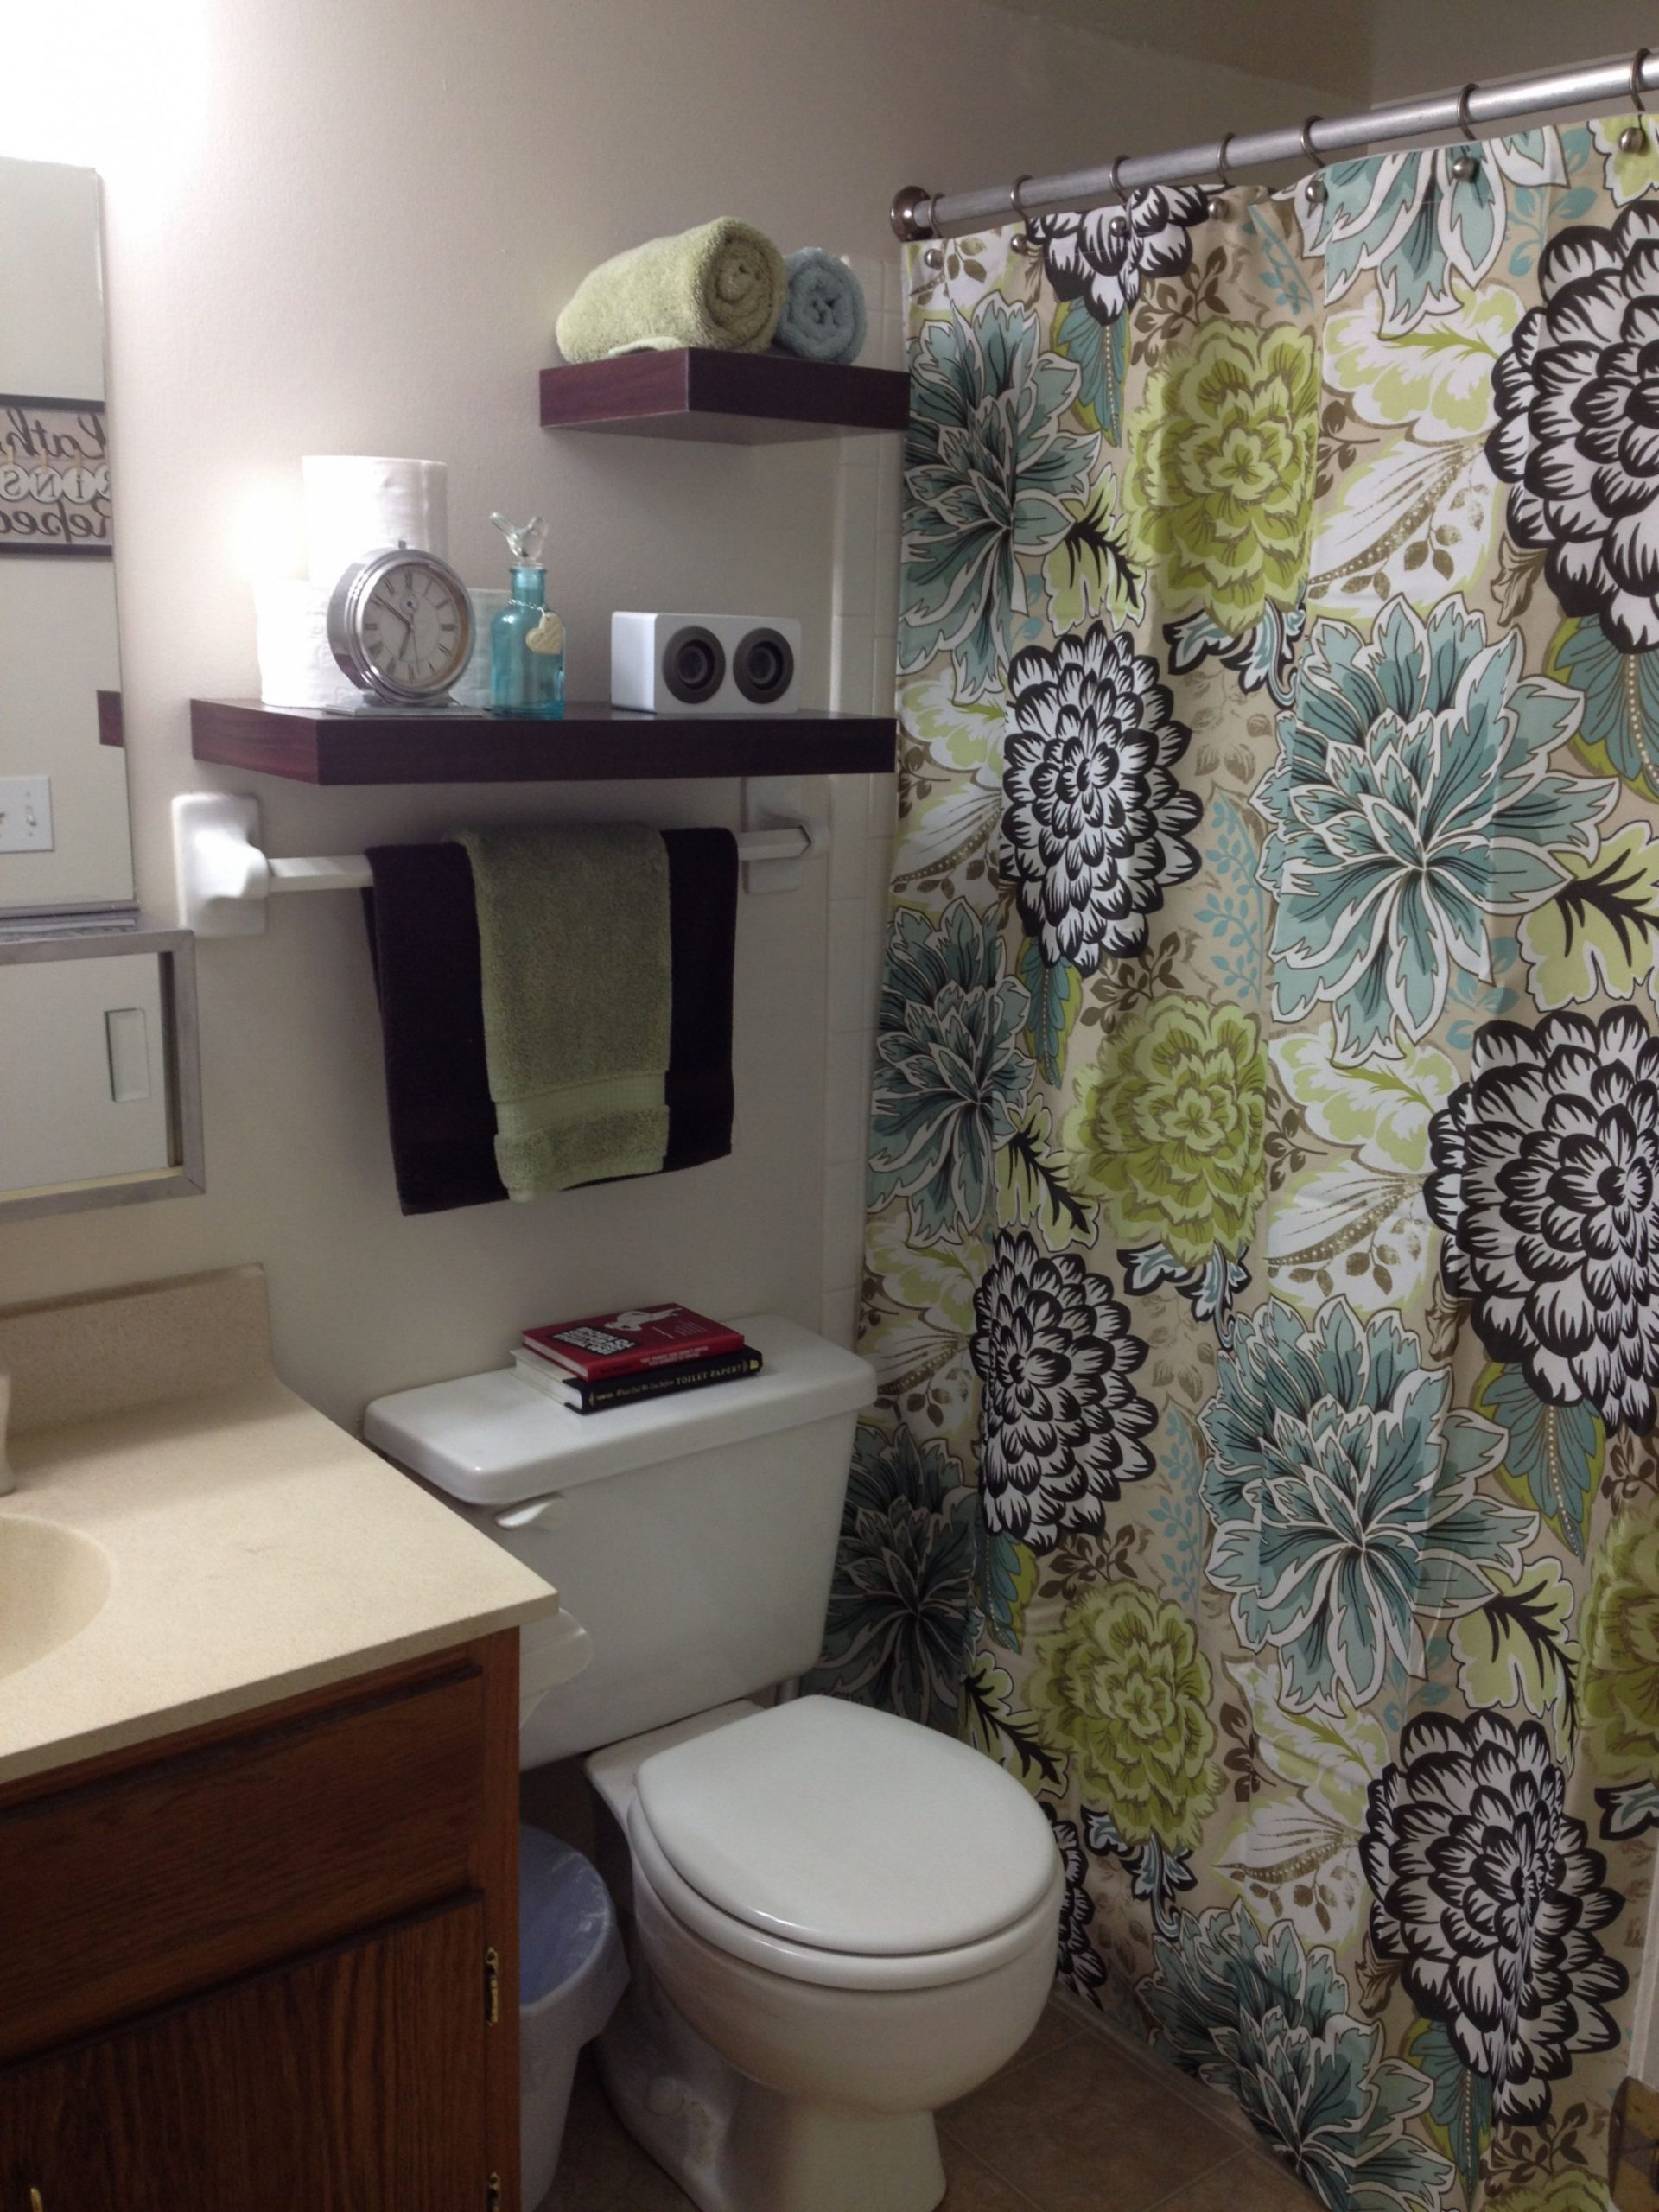 Pin by Ashleigh Young on Apartment Ideas  Small apartment  - Apartment Bathroom Decorating Ideas On A Budget